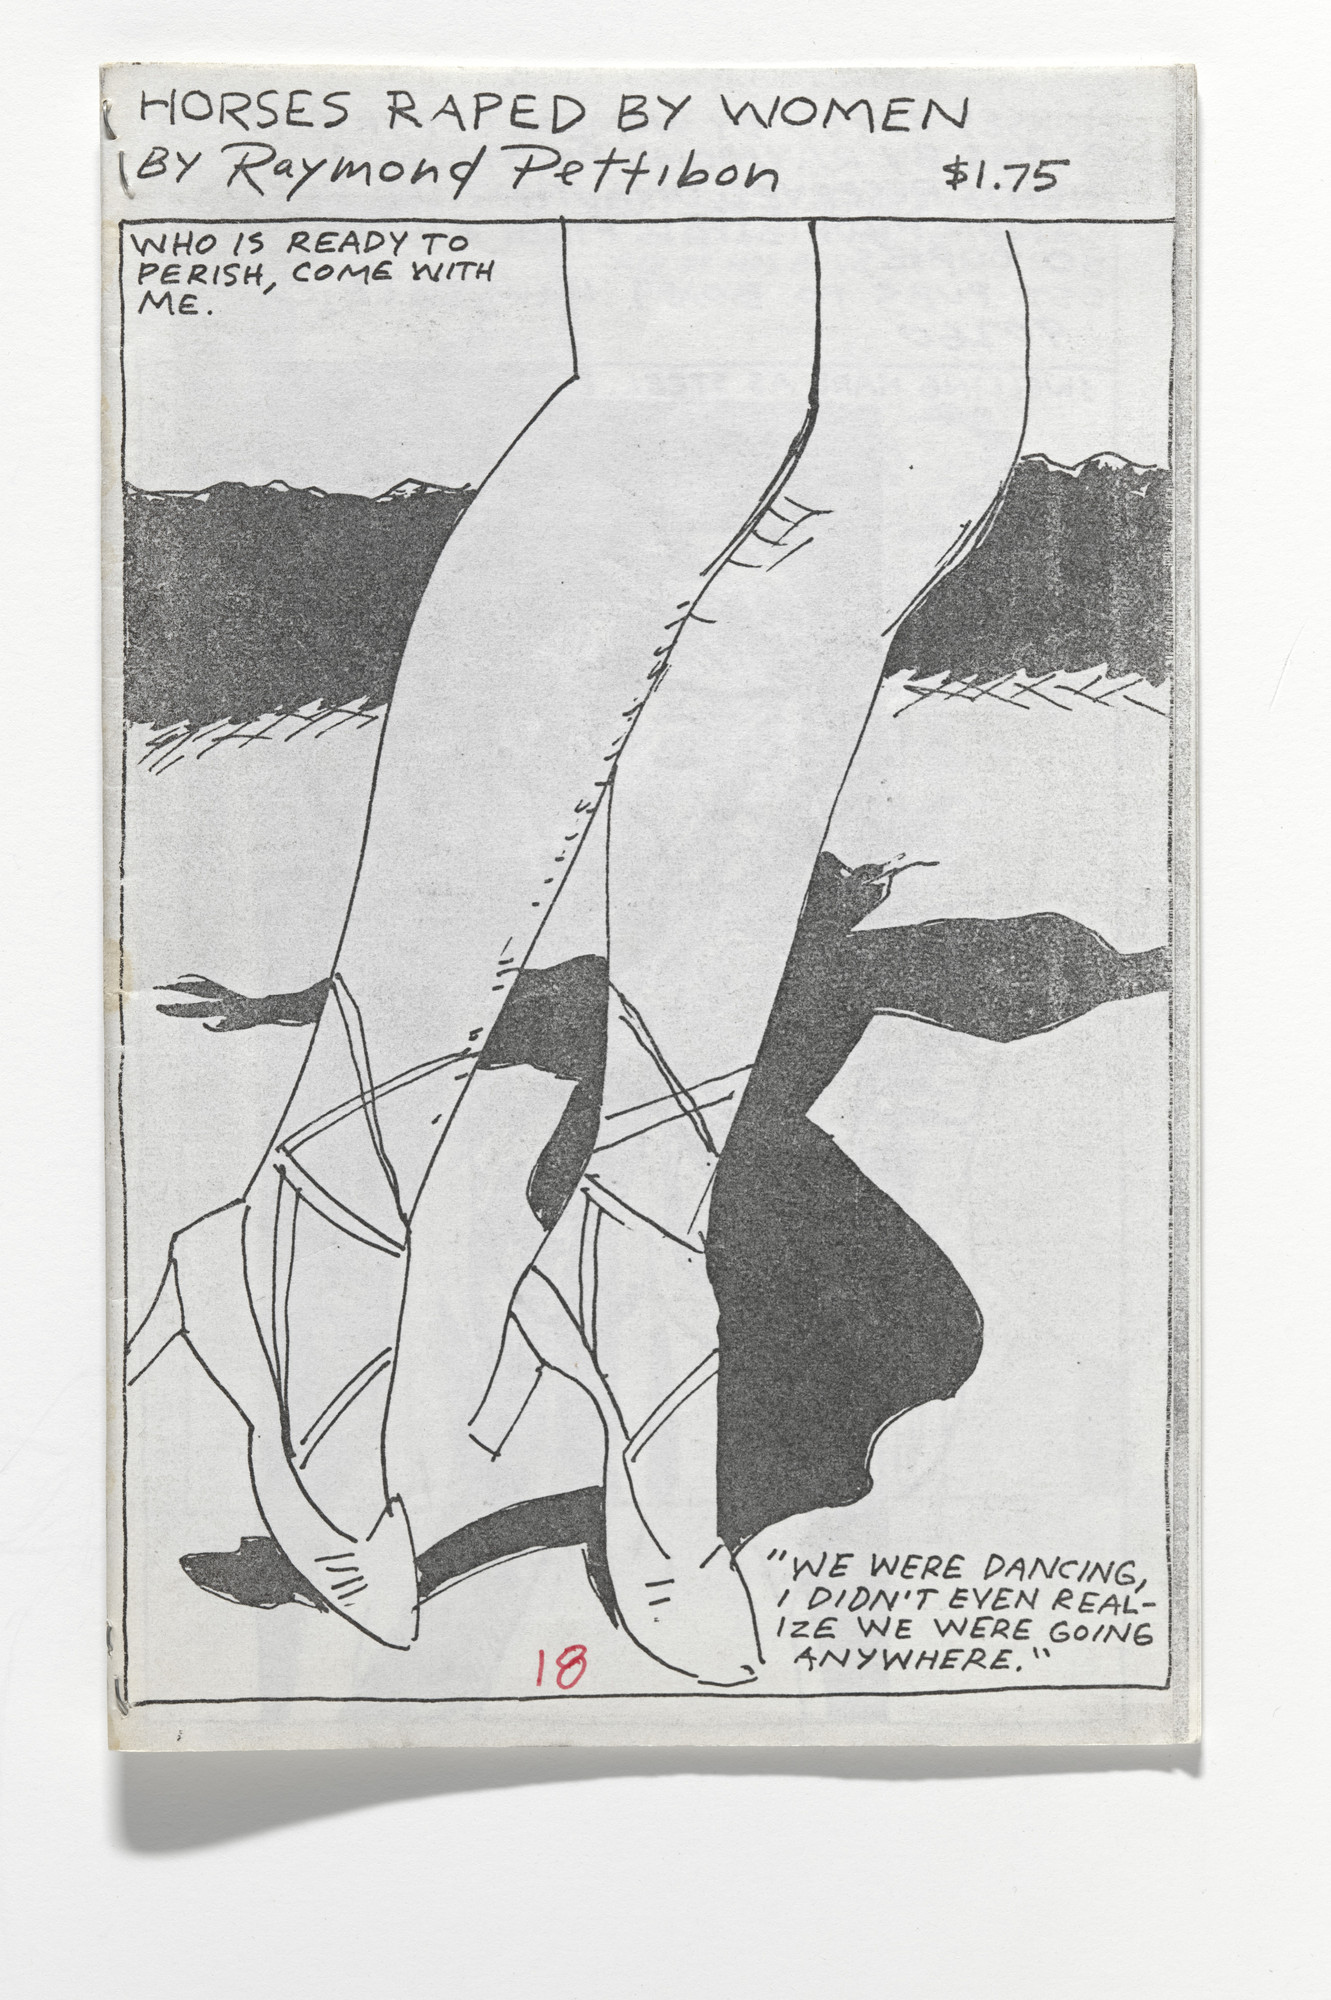 Raymond Pettibon. Horses Raped by Women. 1986